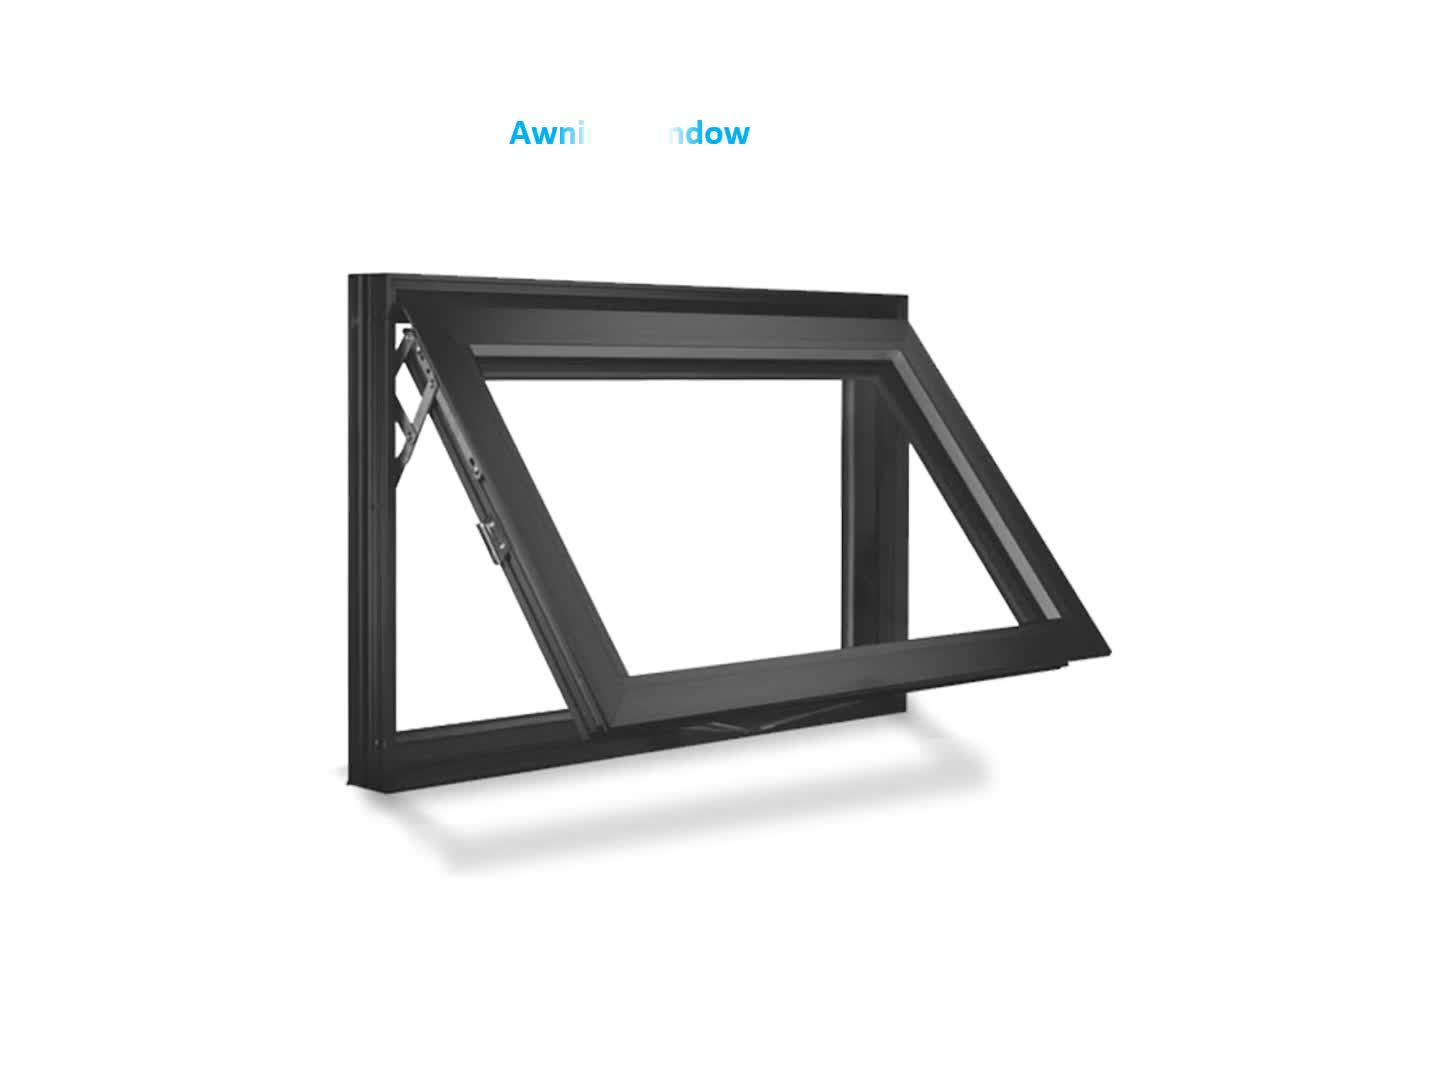 Latest Design Impact Resistant Square Awning Window Awning